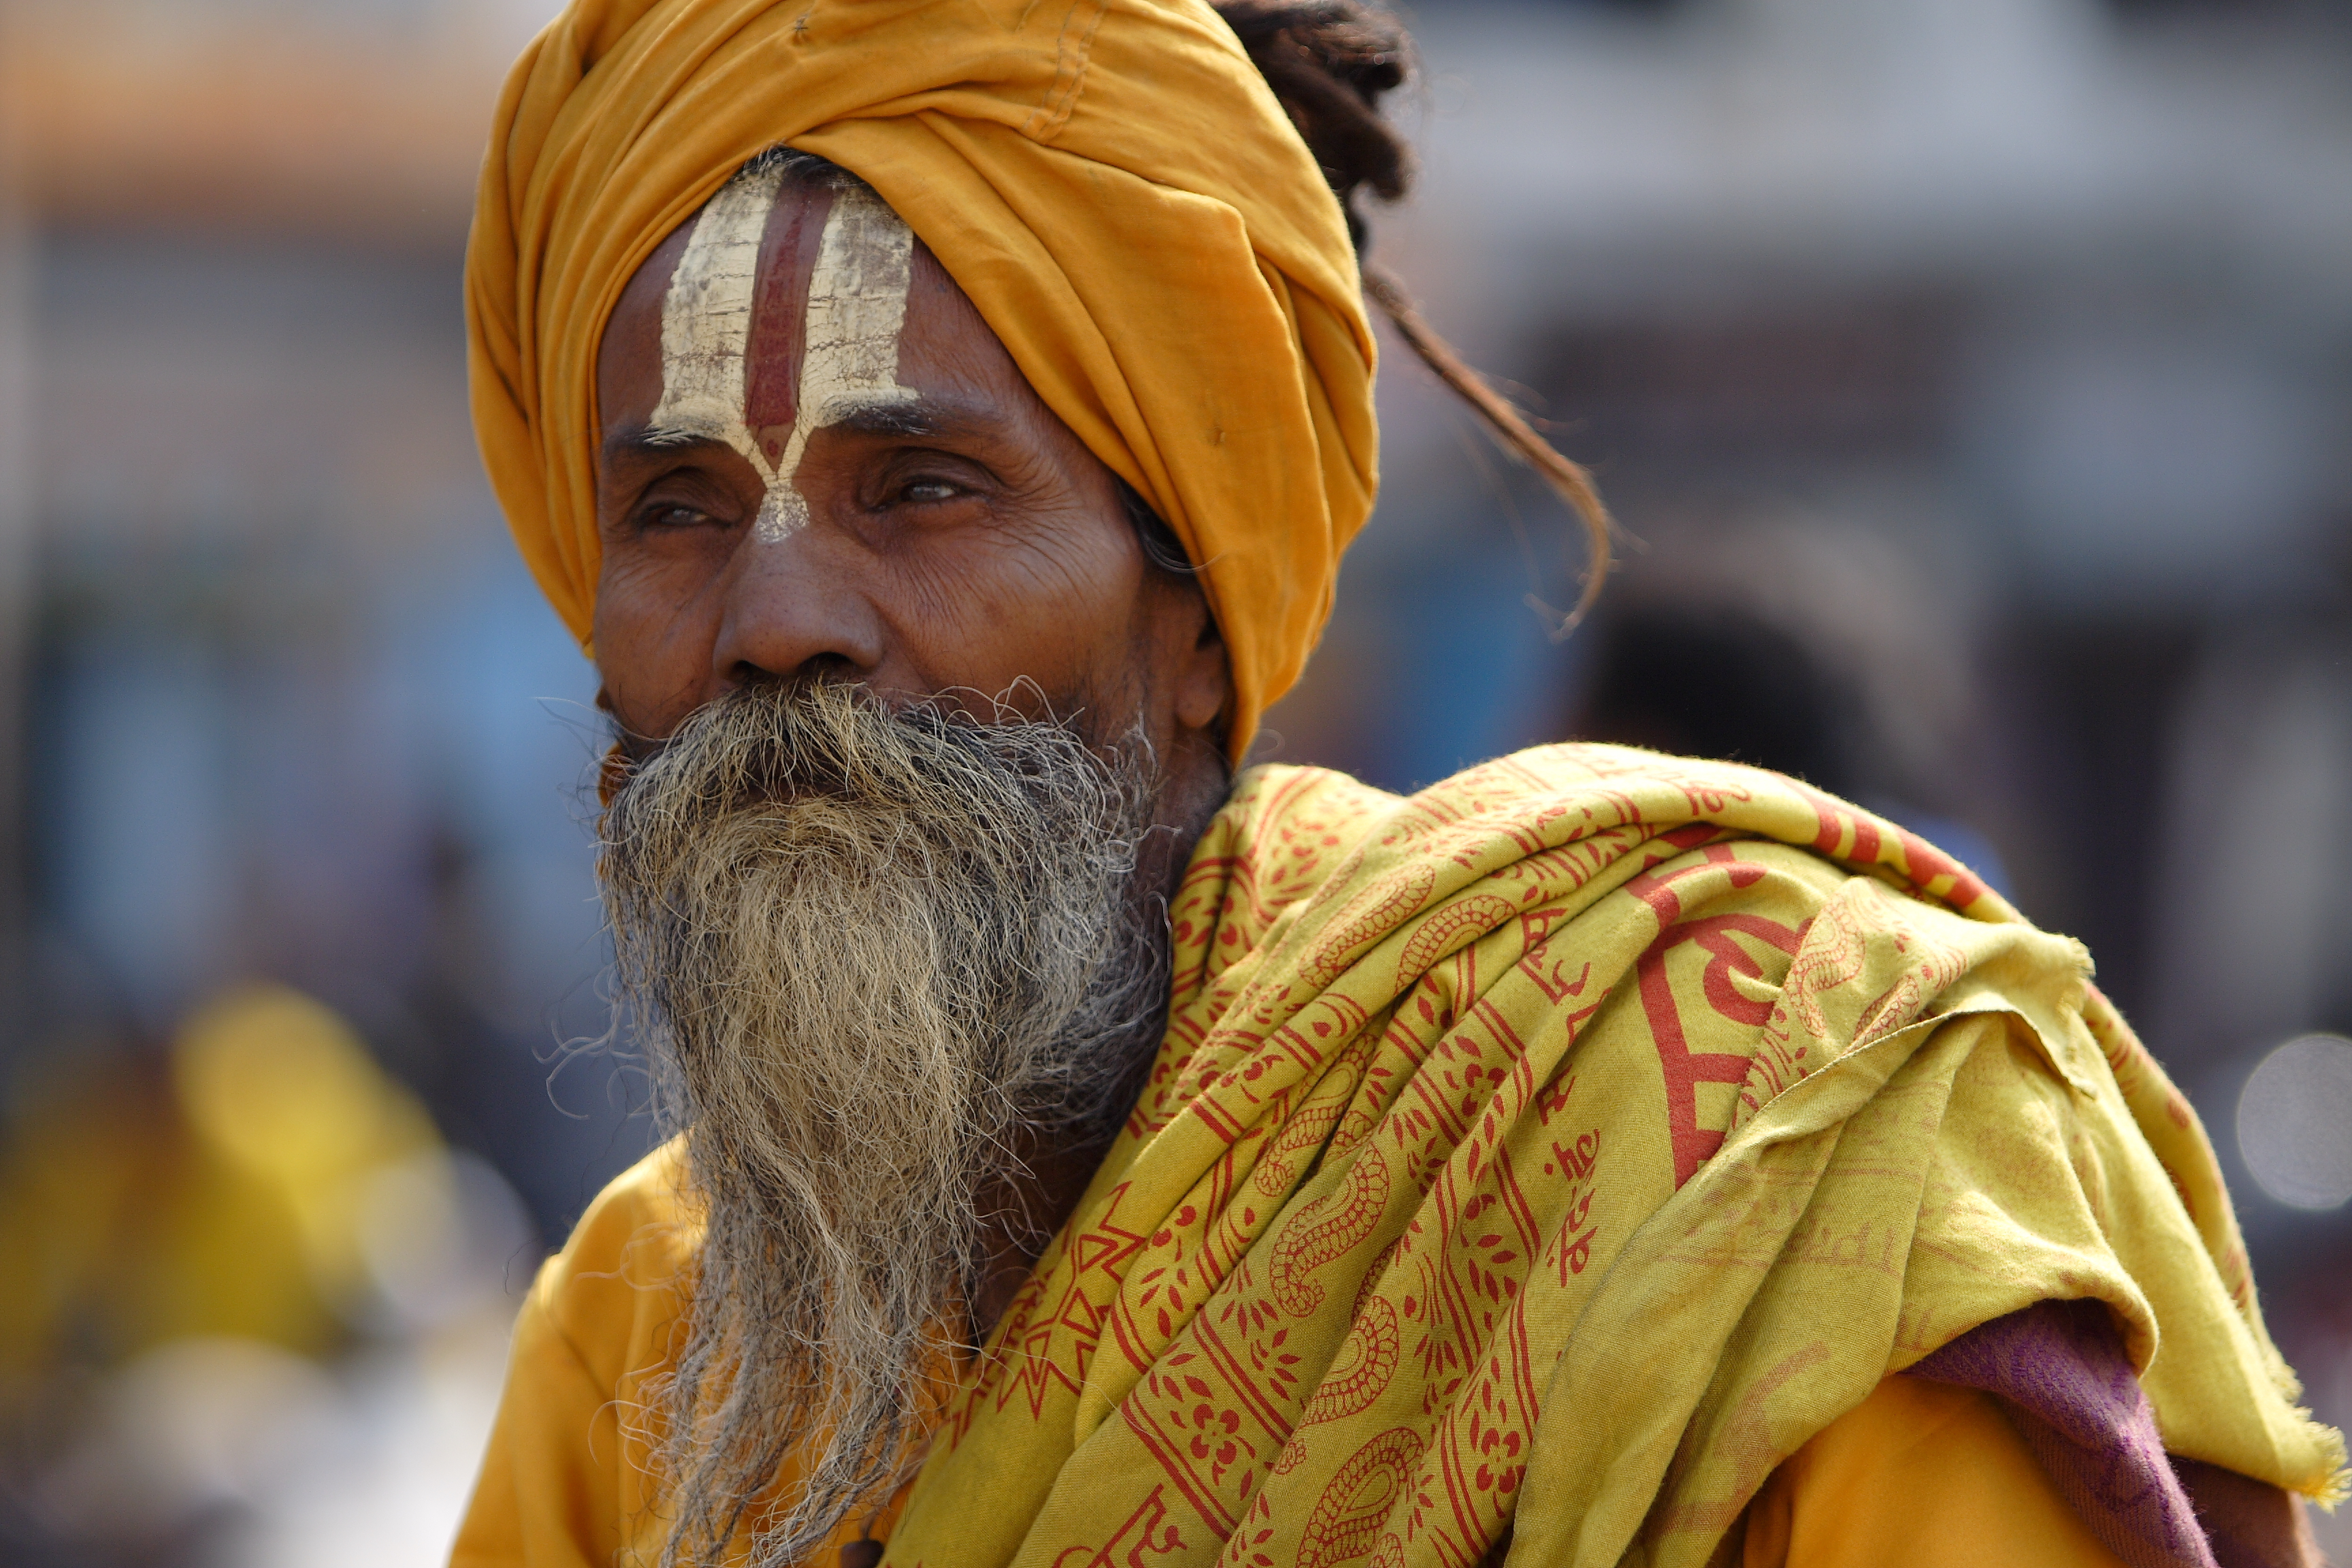 Holy men often wear ochre-coloured clothing to symbolise their focus on holy life and rejection of worldly pastimes. Photo by Dirk Guinan